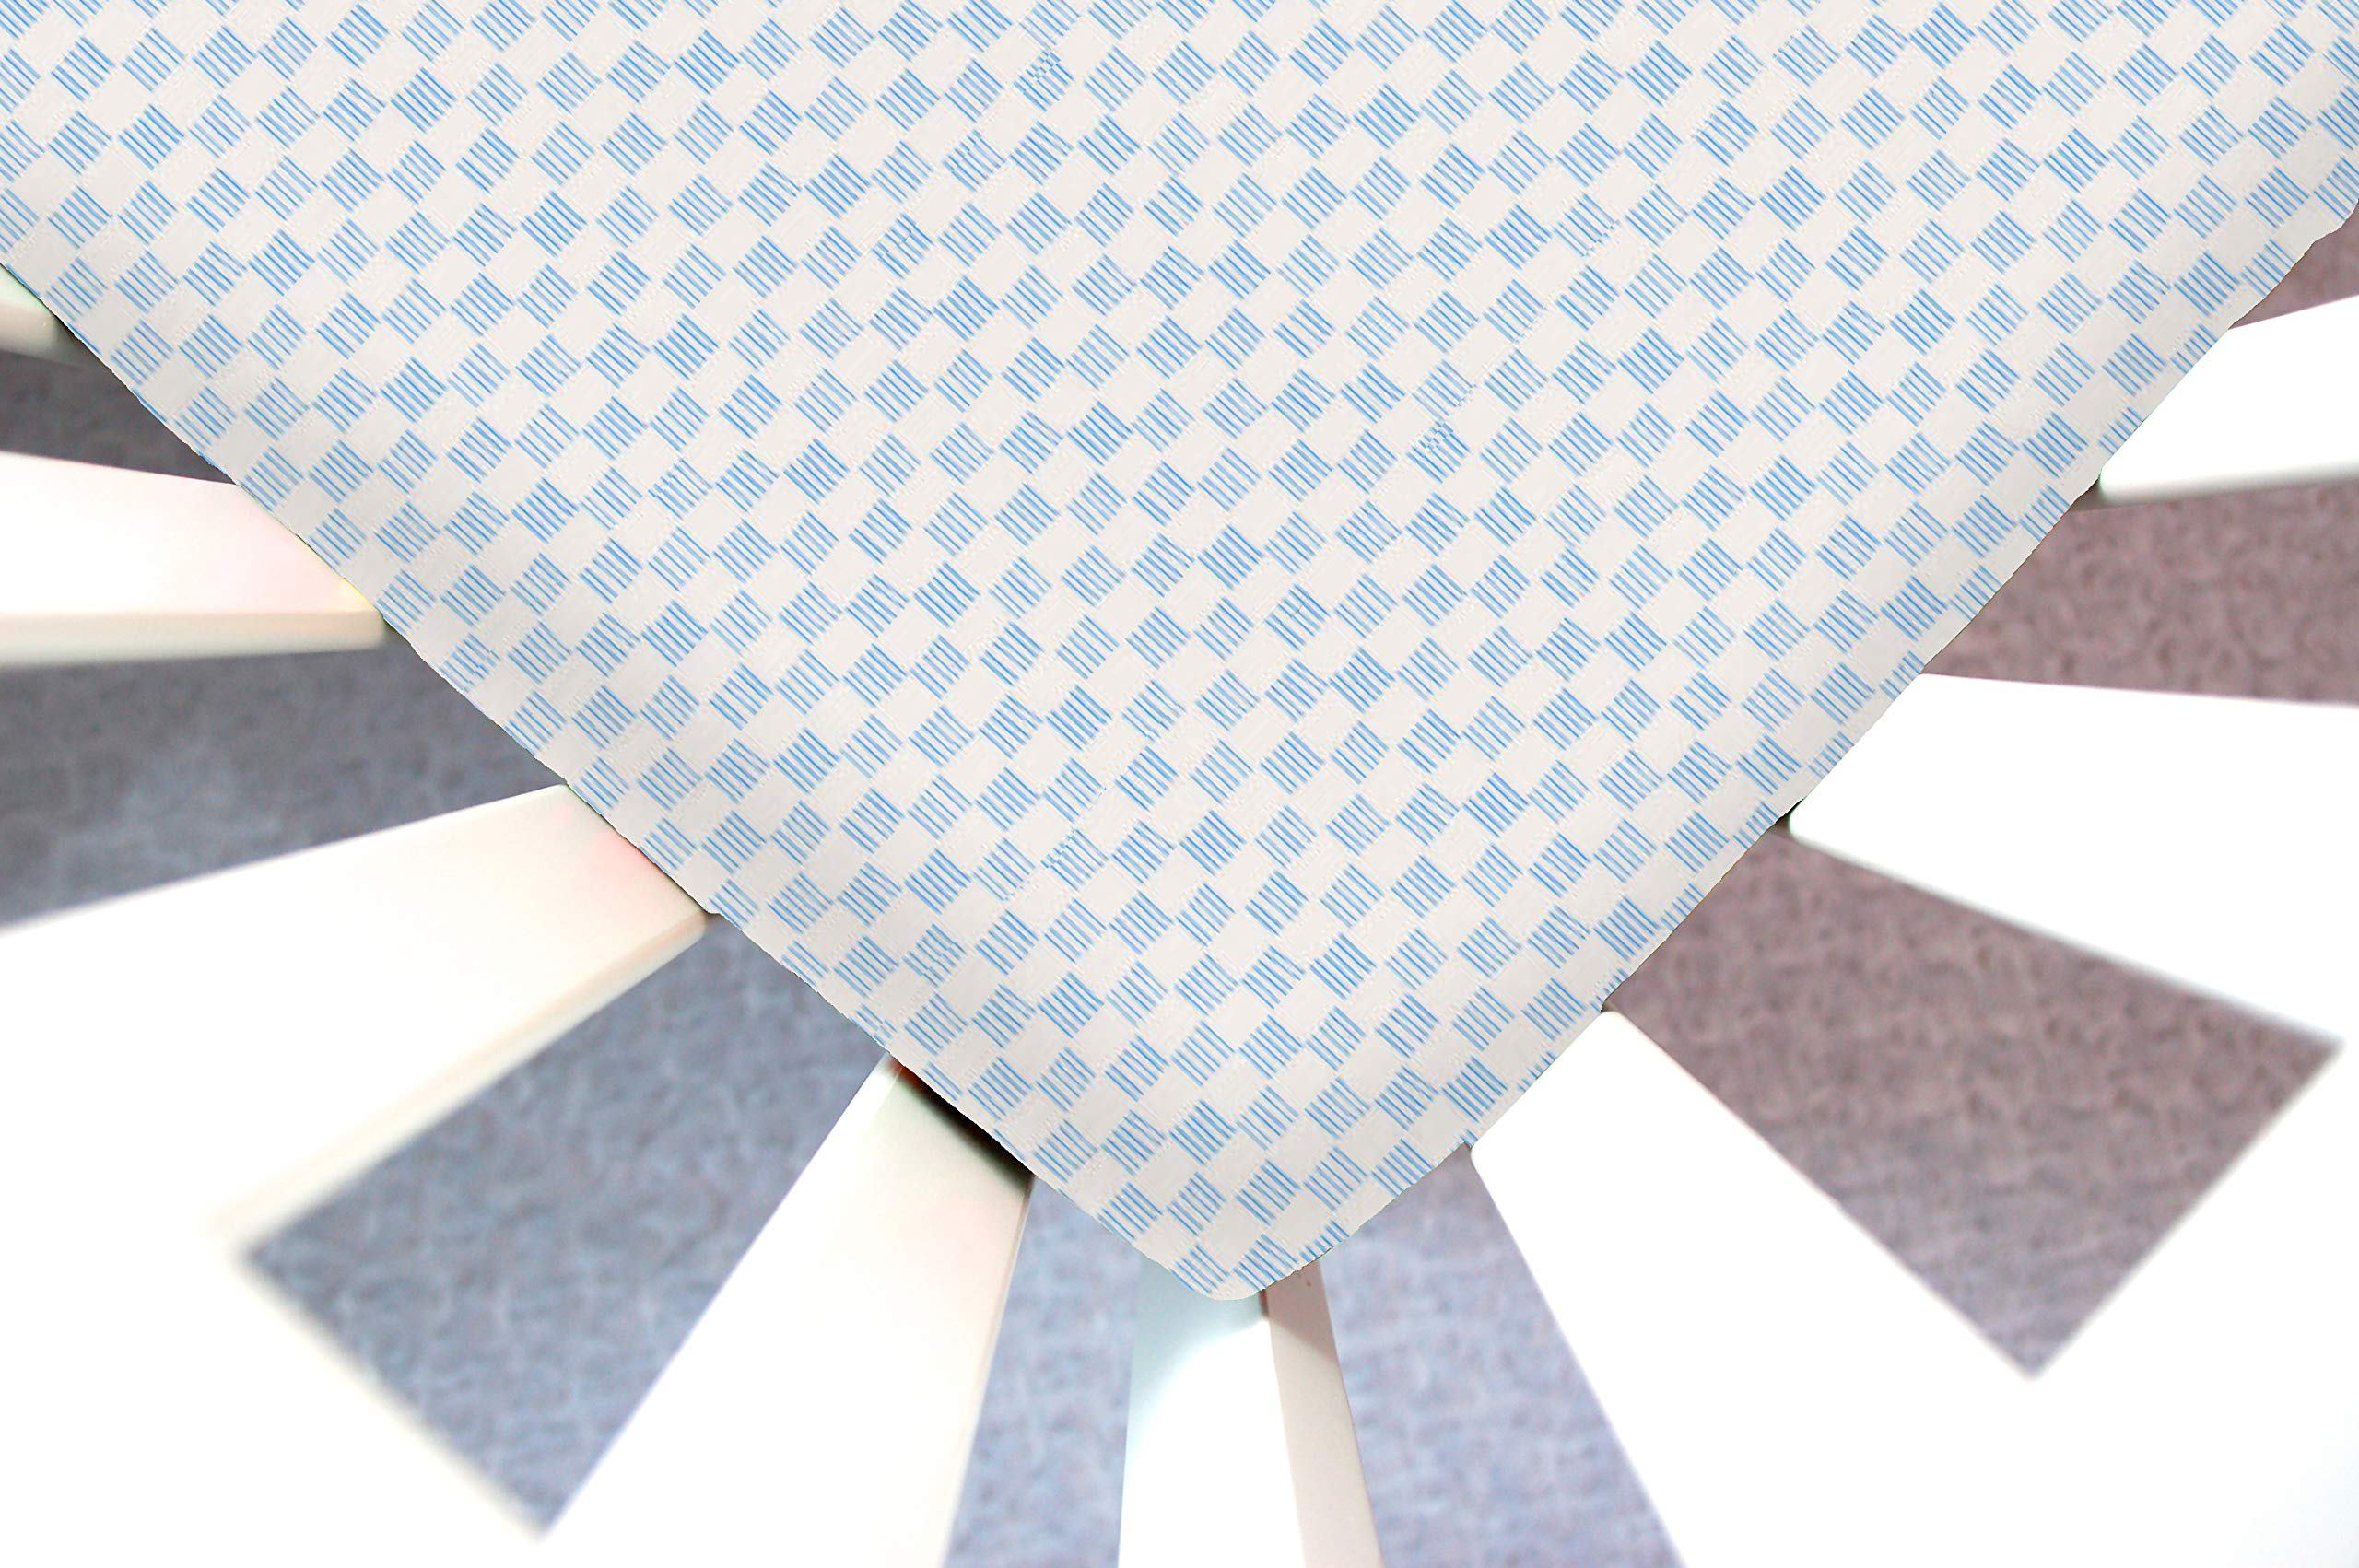 Little Moose by Liza Handmade Sheet Made to Fit IKEA Toddler in Dorothy (Blue Checkered). This Sheet was Not Created or Sold by IKEA. by Little Moose By Liza LLC